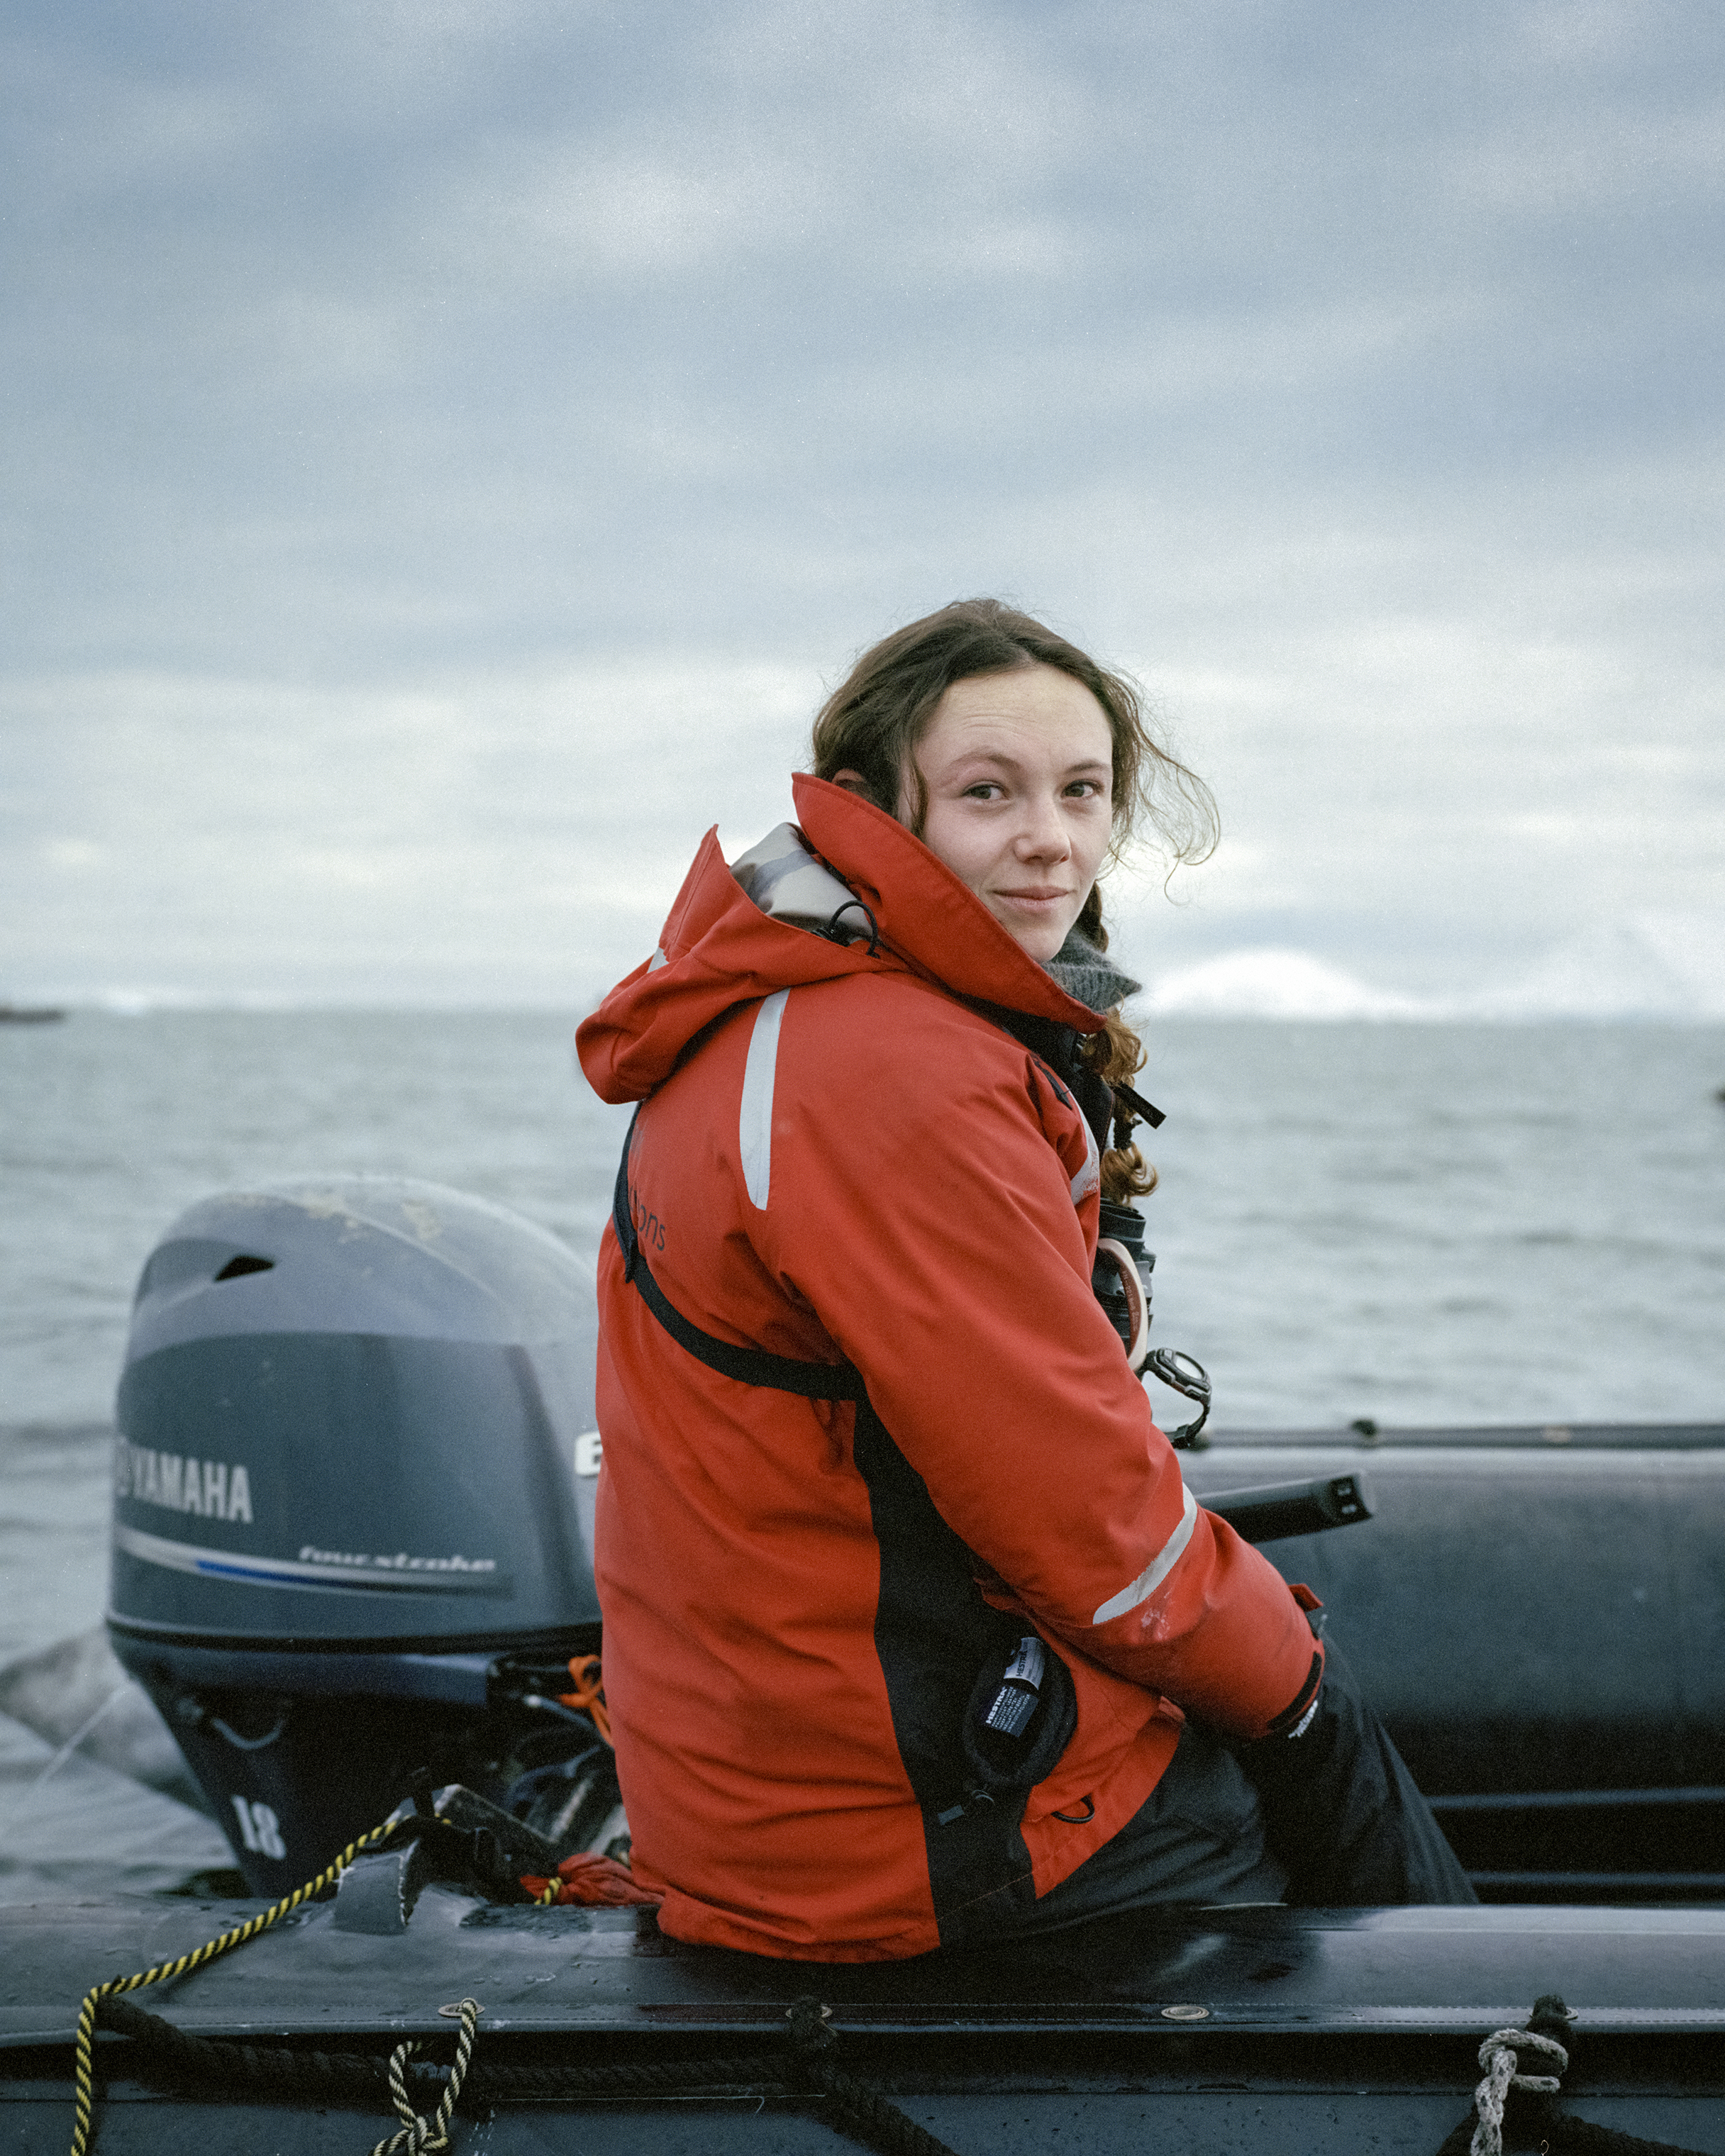 Justine Ryan, Polar historian and expedition guide from England, prepares her zodiac in Antarctica.